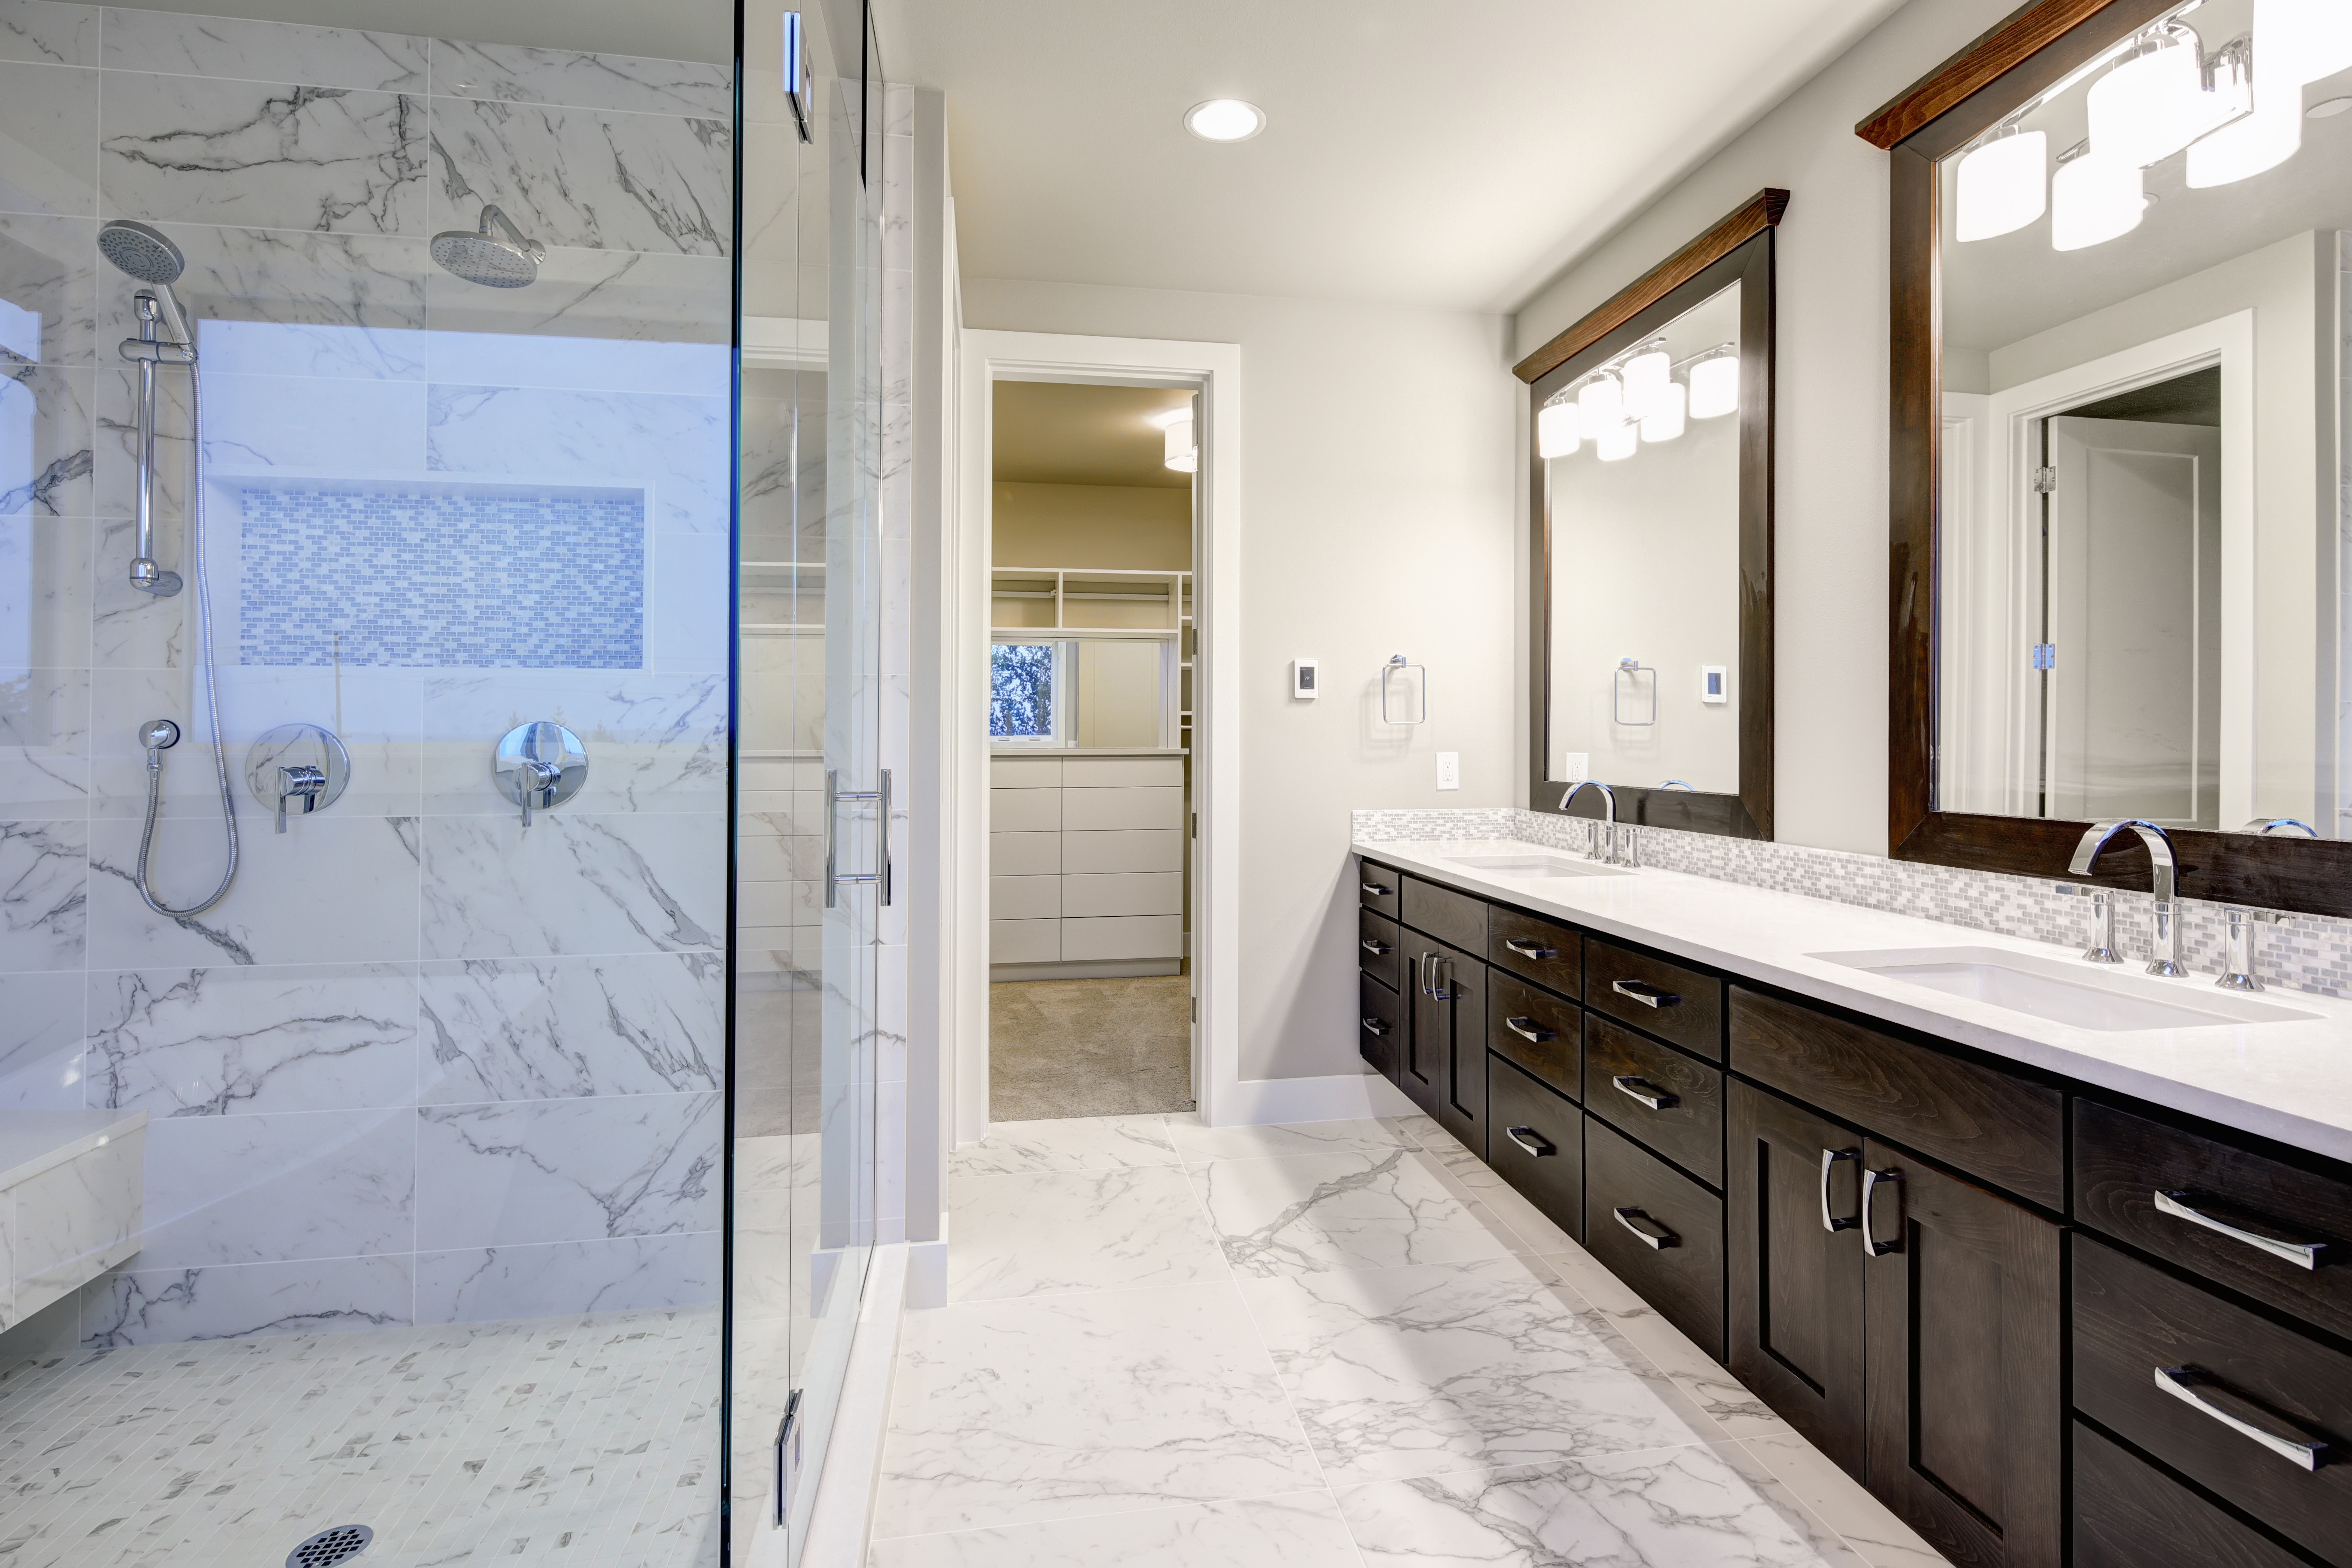 Medium size bathroom remodel featuring marble tile in the shower with niche and seating.  Beautiful espresso double vanity with white quartz countertops with drop sinks with a mosaic backsplash.